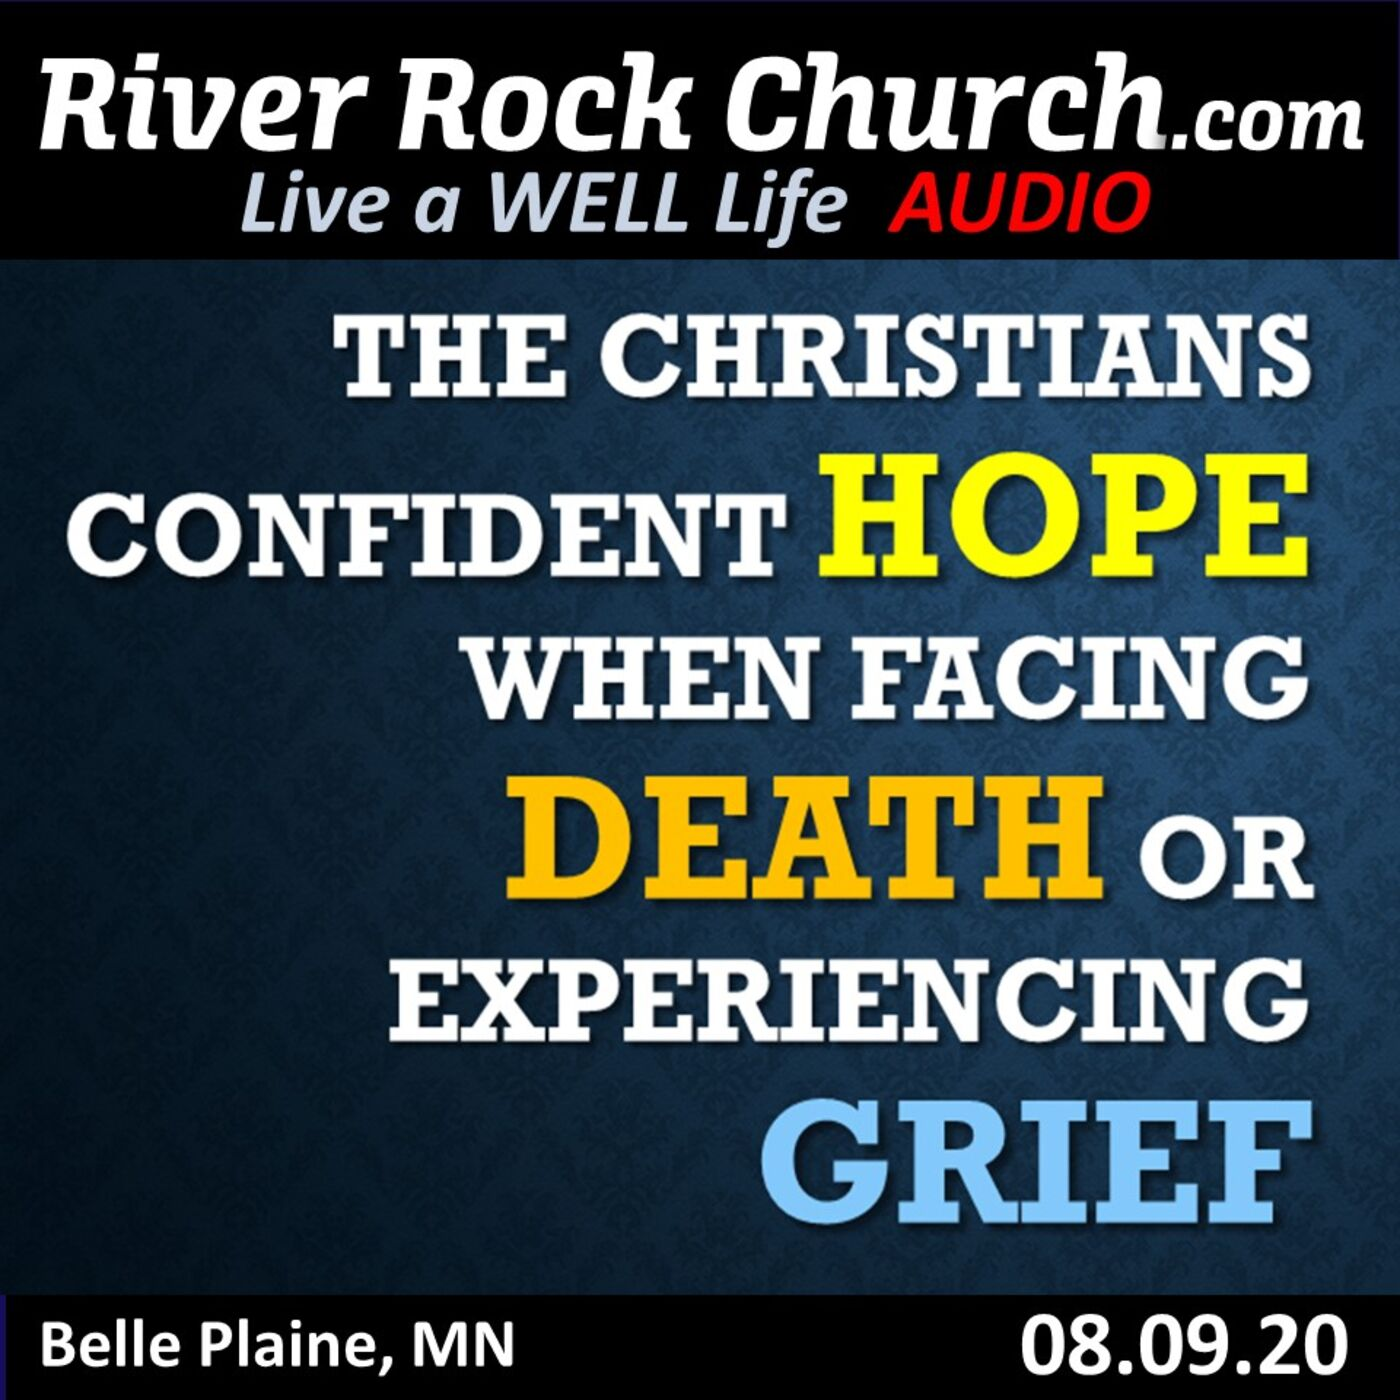 The Christians Confident Hope when Facing Death or Experiencing Grief